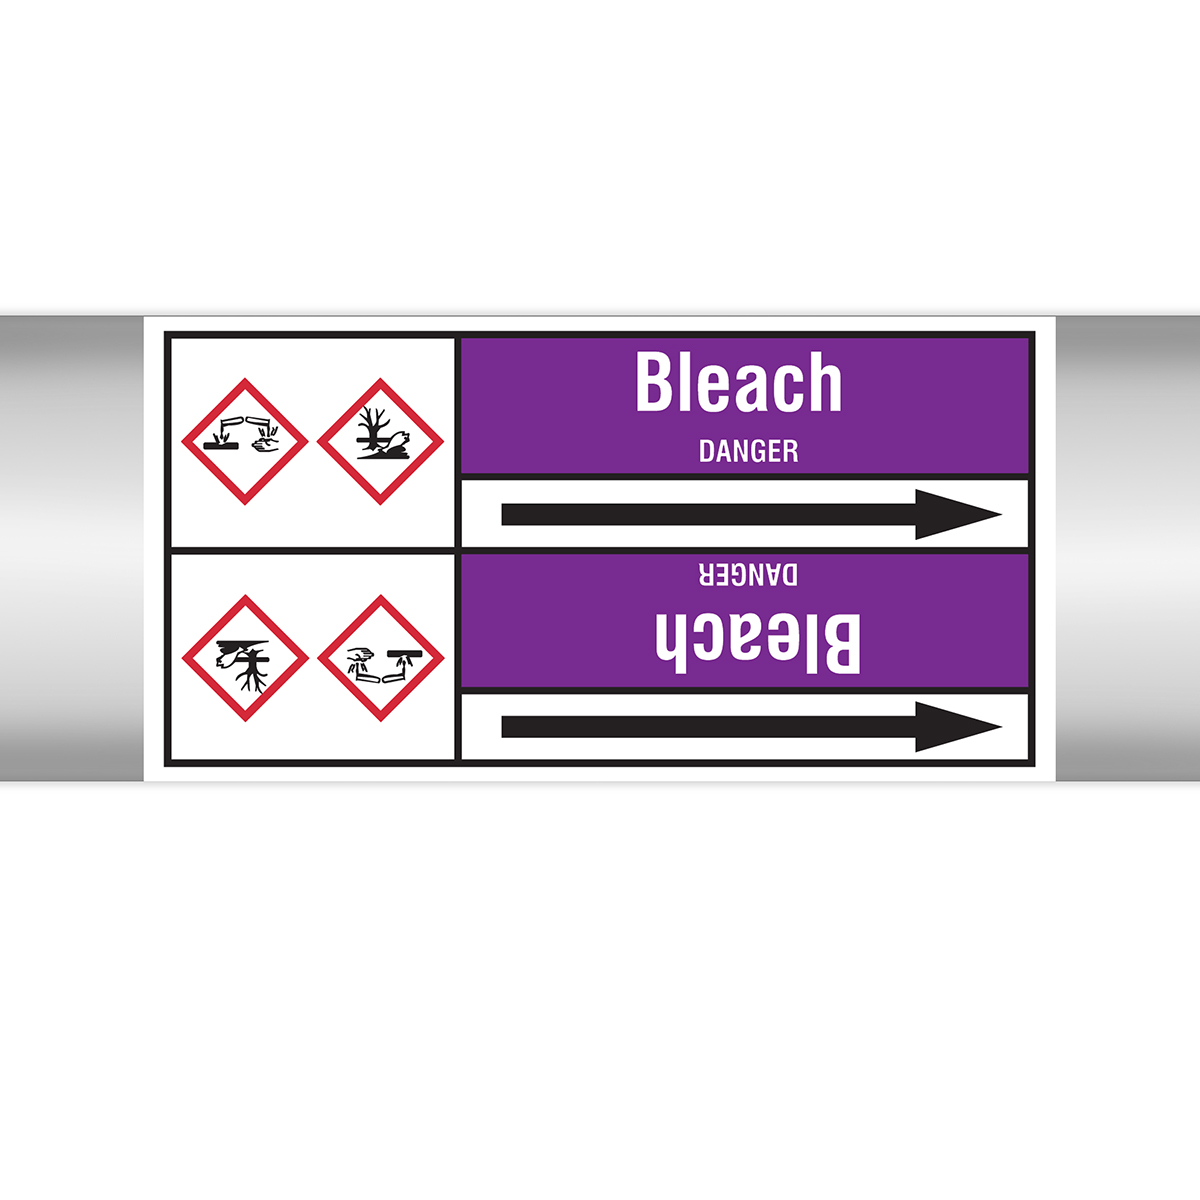 Roll Form Liner-less Type 2 - Bleach